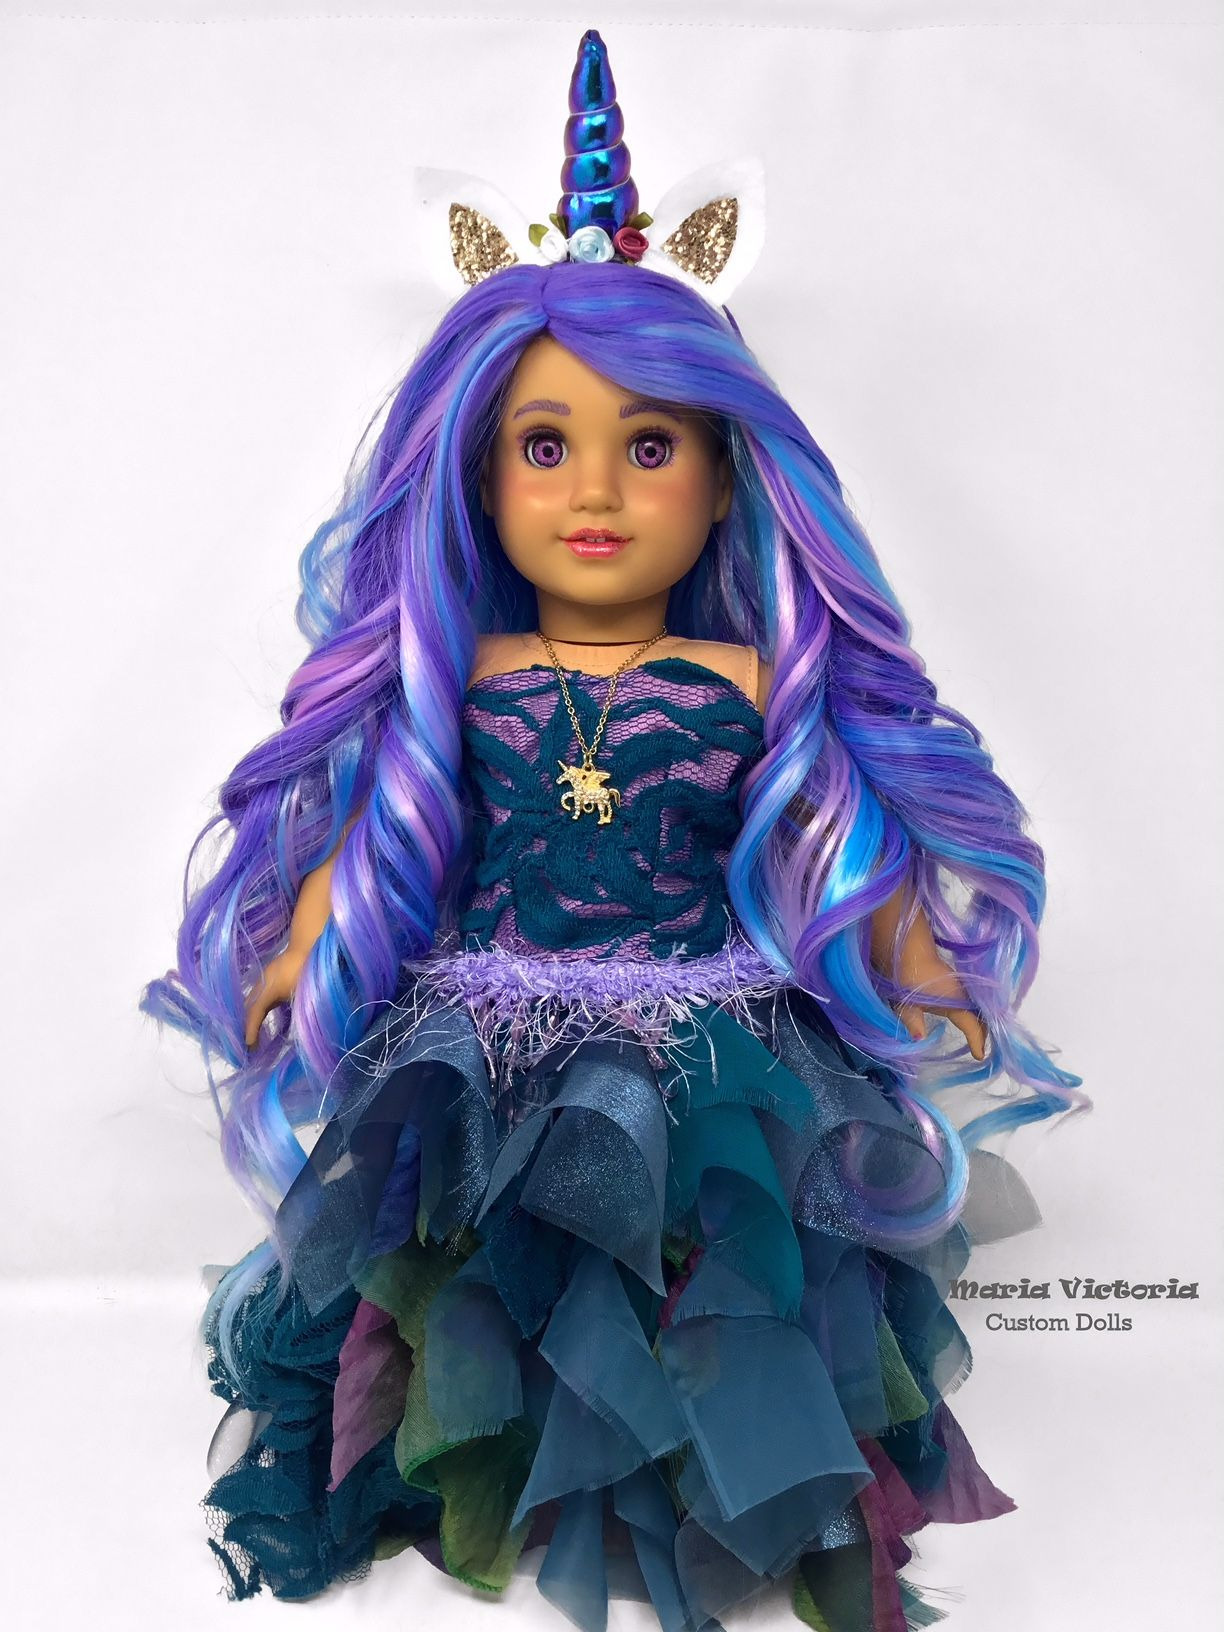 American Girl Custom OOAK Doll Purple Iridescent Unicorn Princess #americangirl #dolls #mariavictoriacustomdolls #unicorn #unicornprincess #americangirlhouse